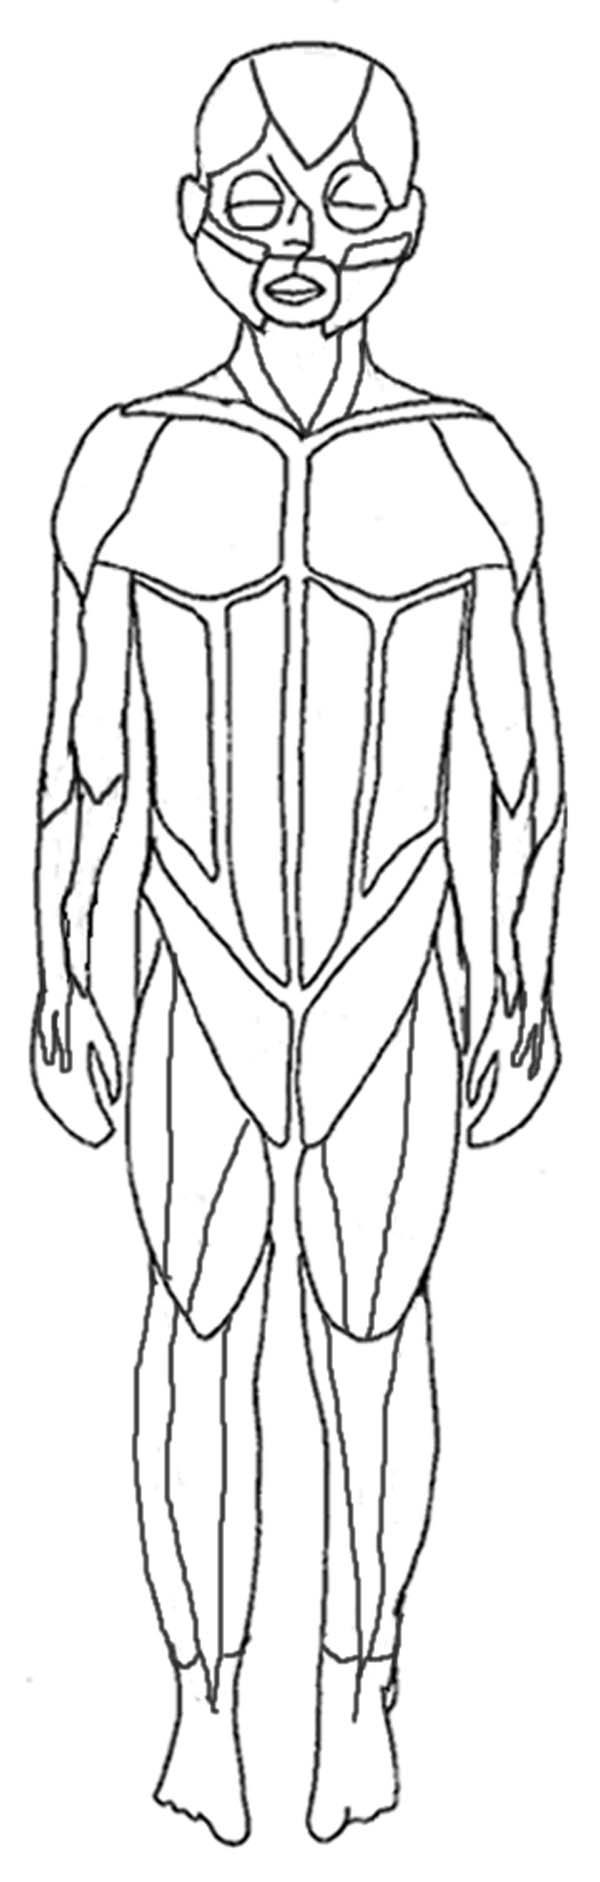 Human Anatomy Human Muscles Coloring Pages